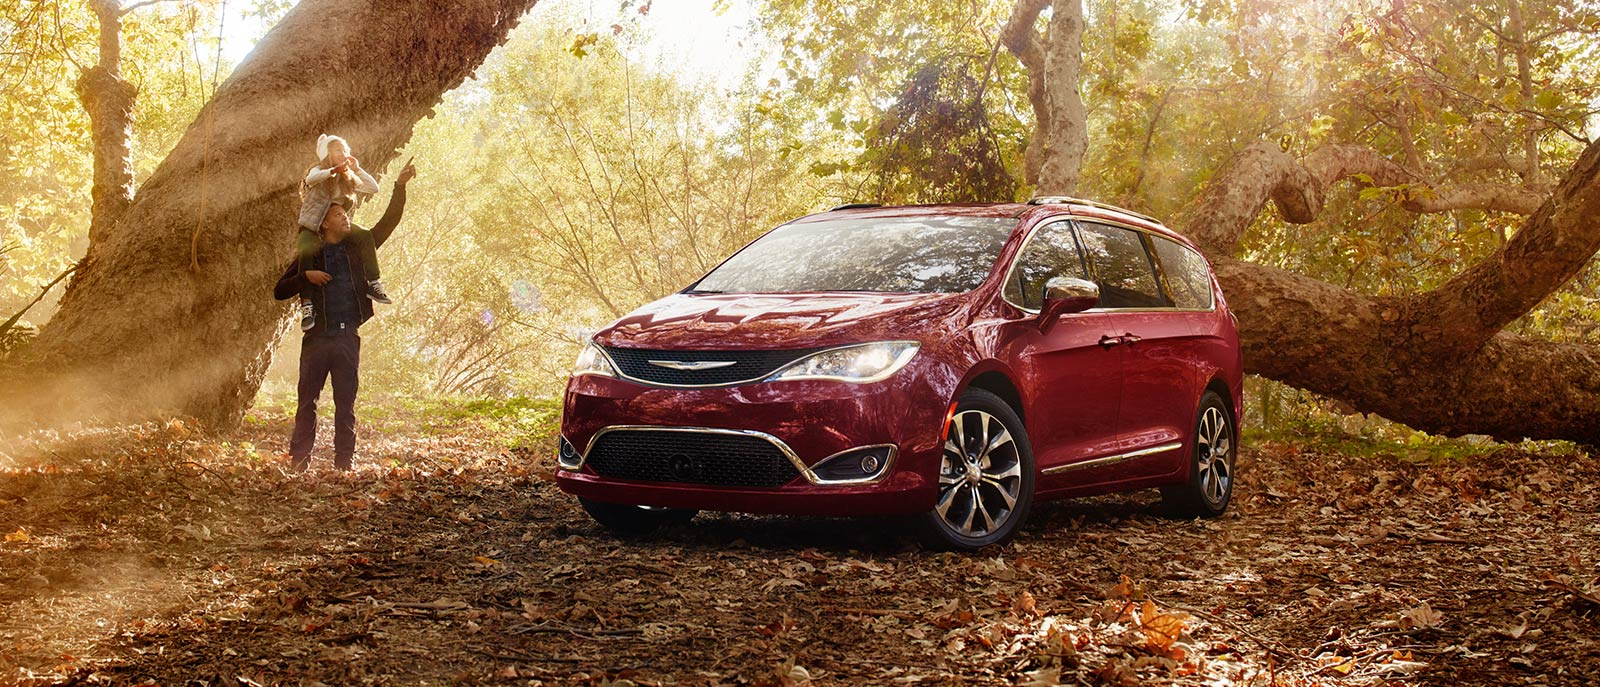 2017 Red Pacifica Exterior Forest